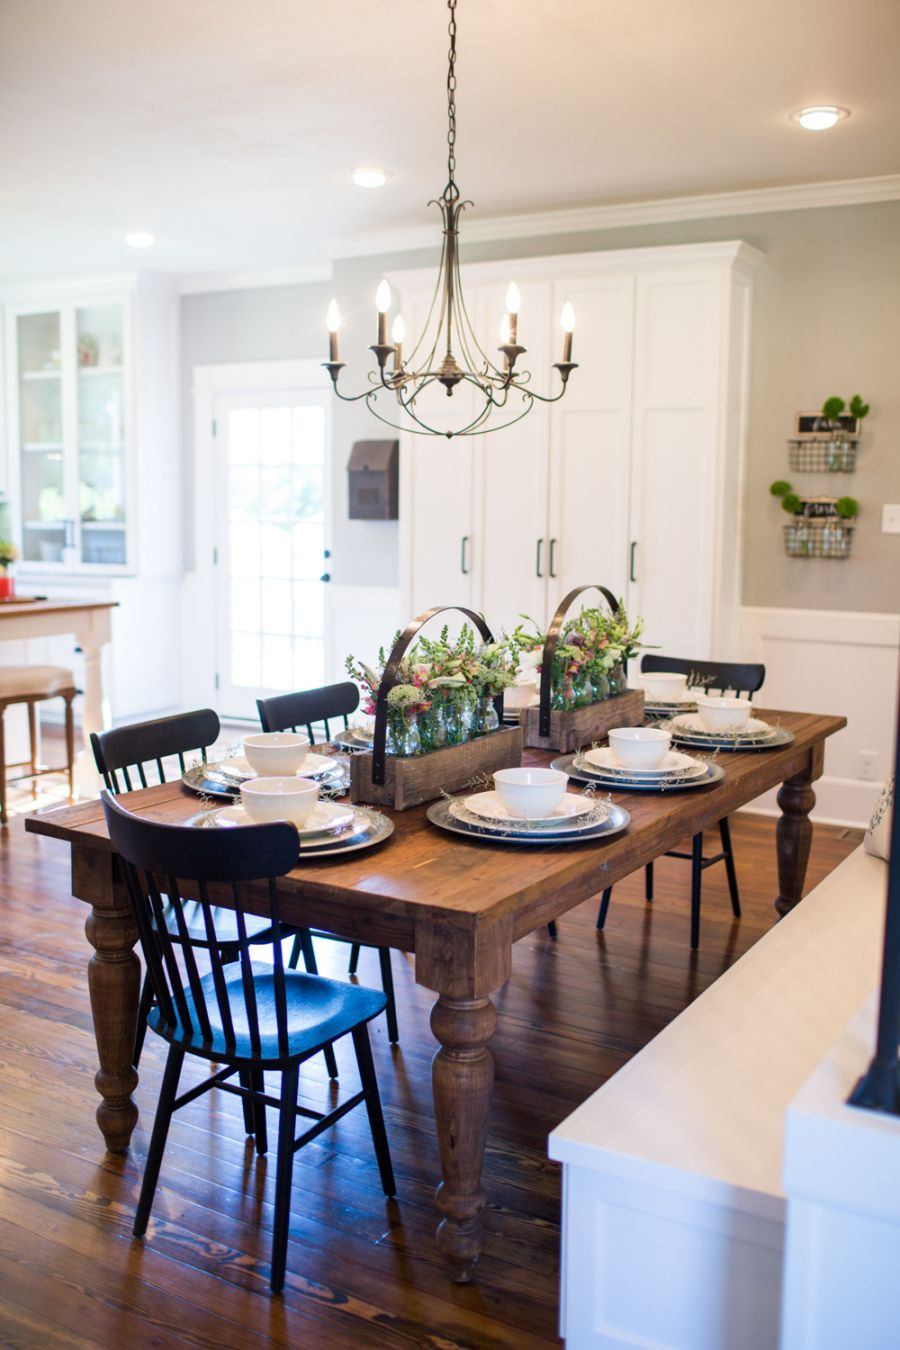 Love The Tableblack Chairs N Bench But Really Like Center Mason Jars With Flowers Fixer Upper Season Kitchen Design By Joanna Gaines Is Perfect